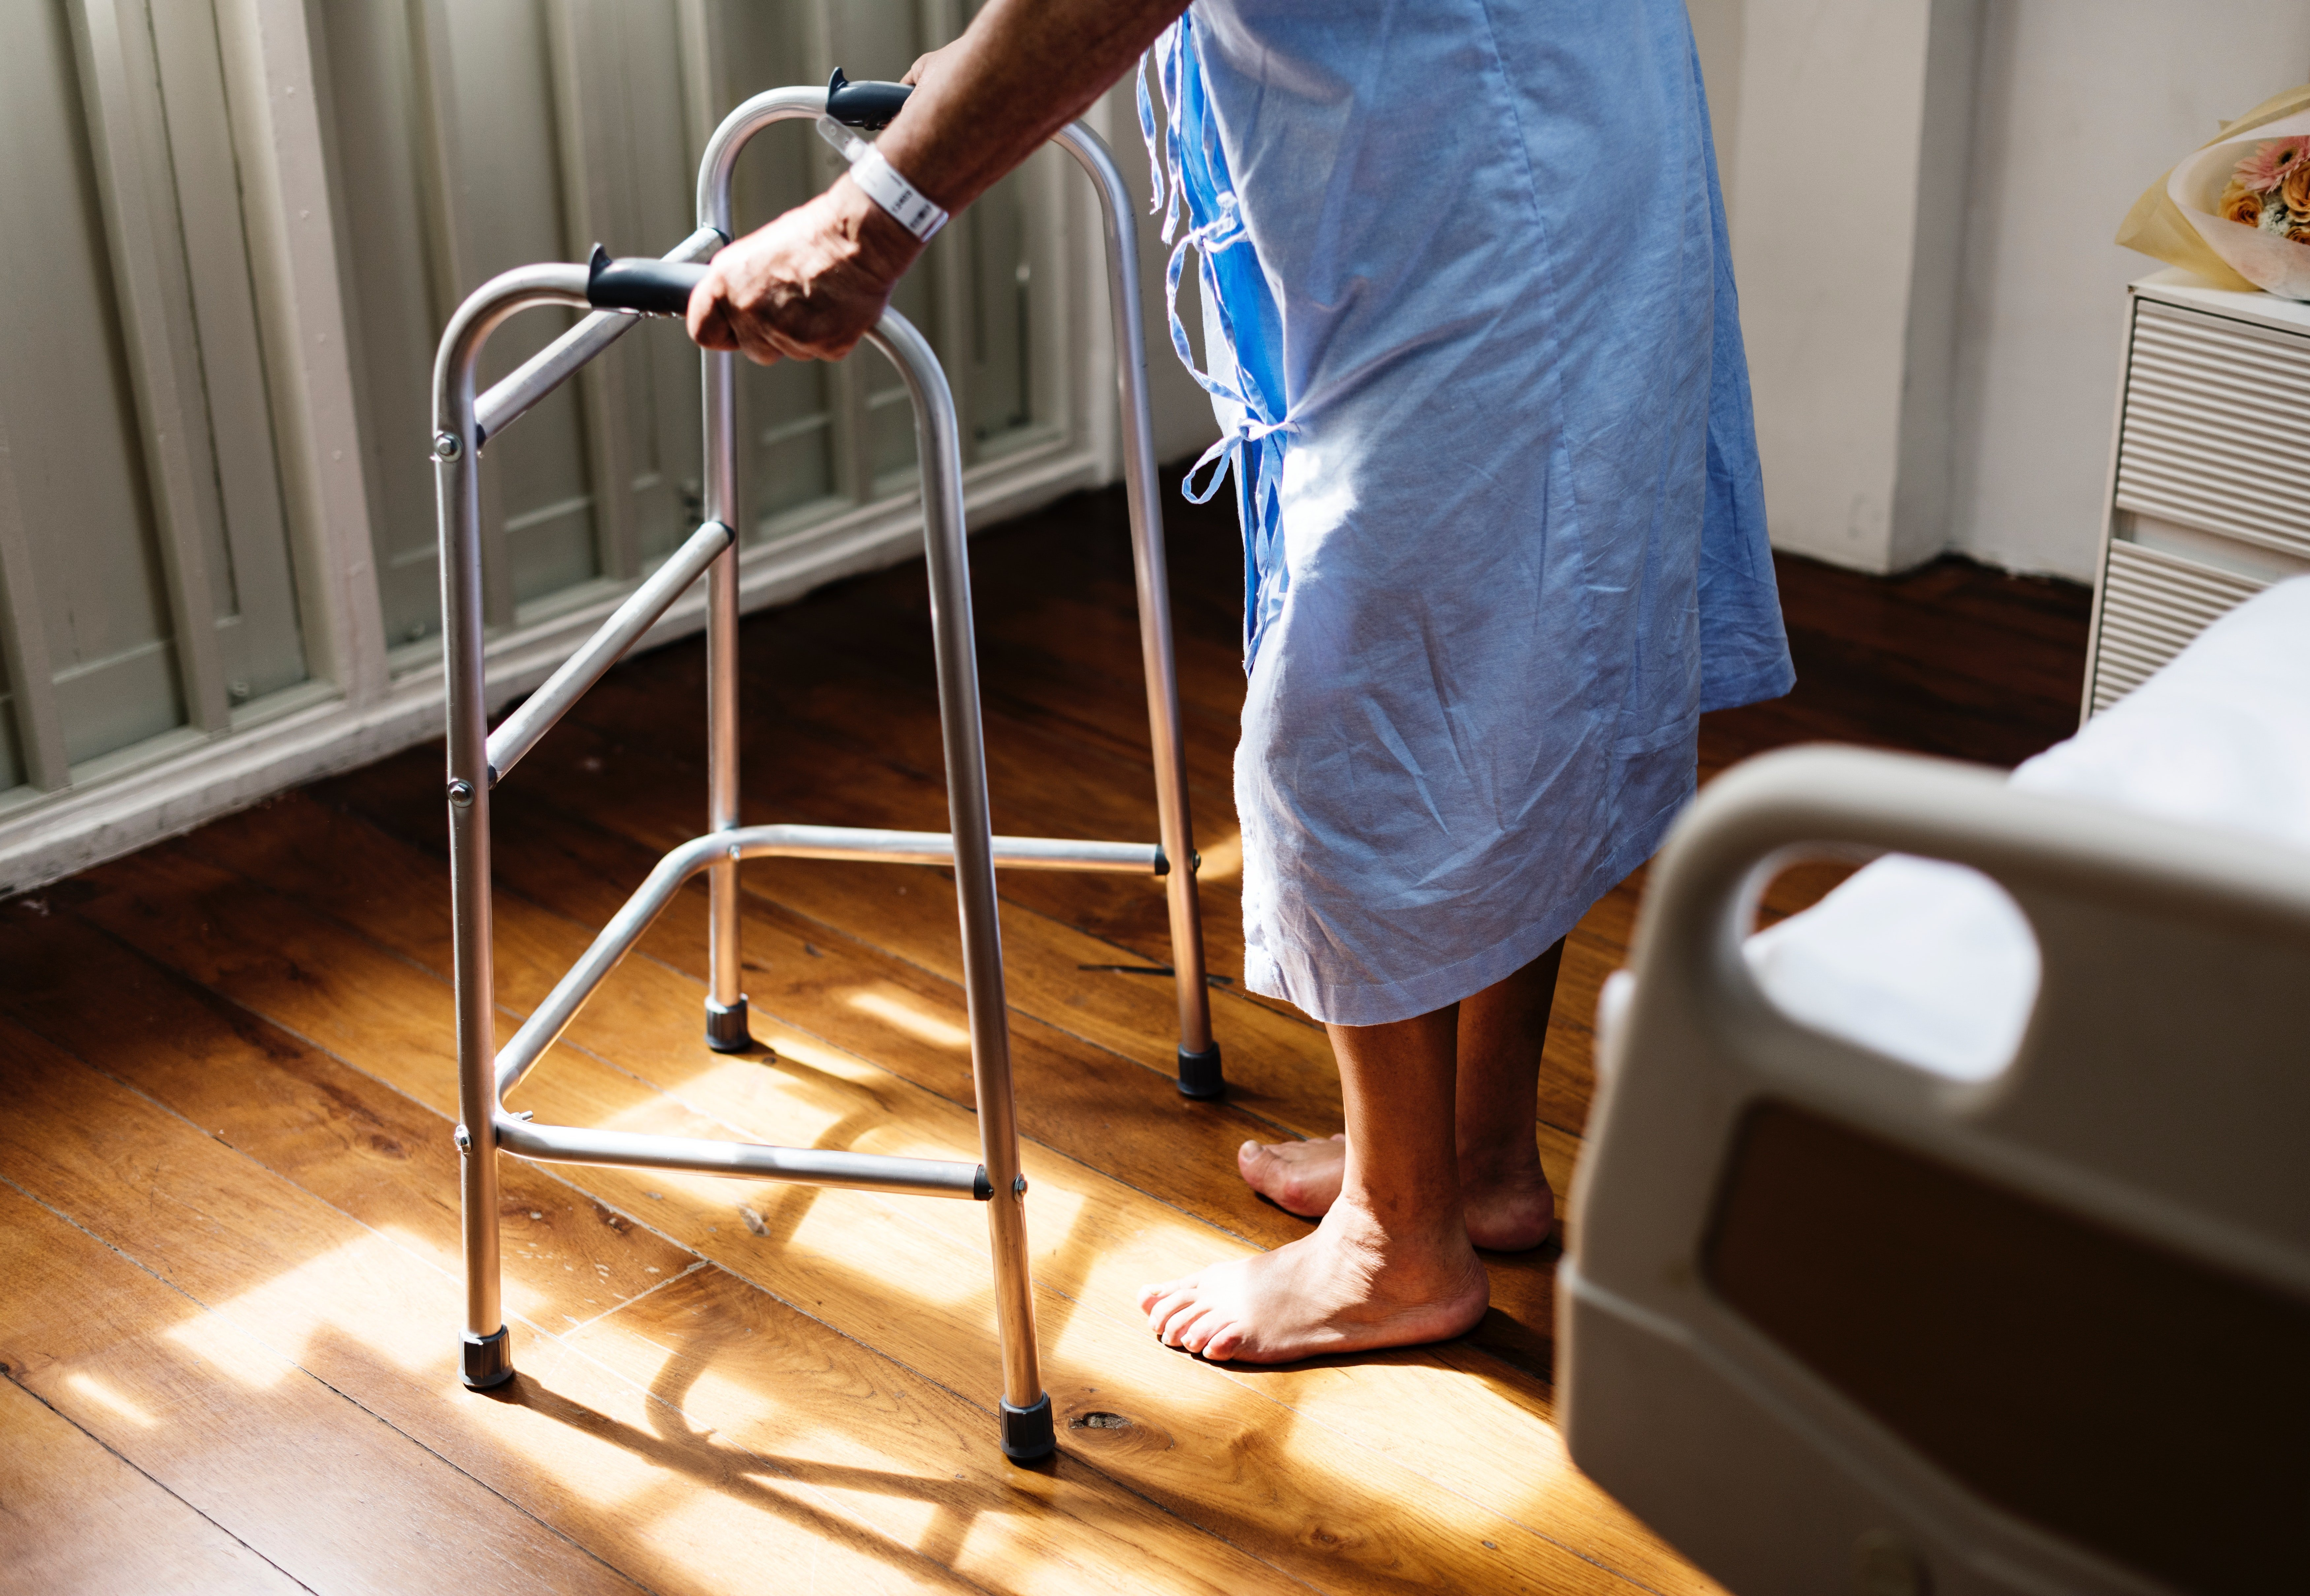 Old man in a hospital trying to walk. | Source: Pexels